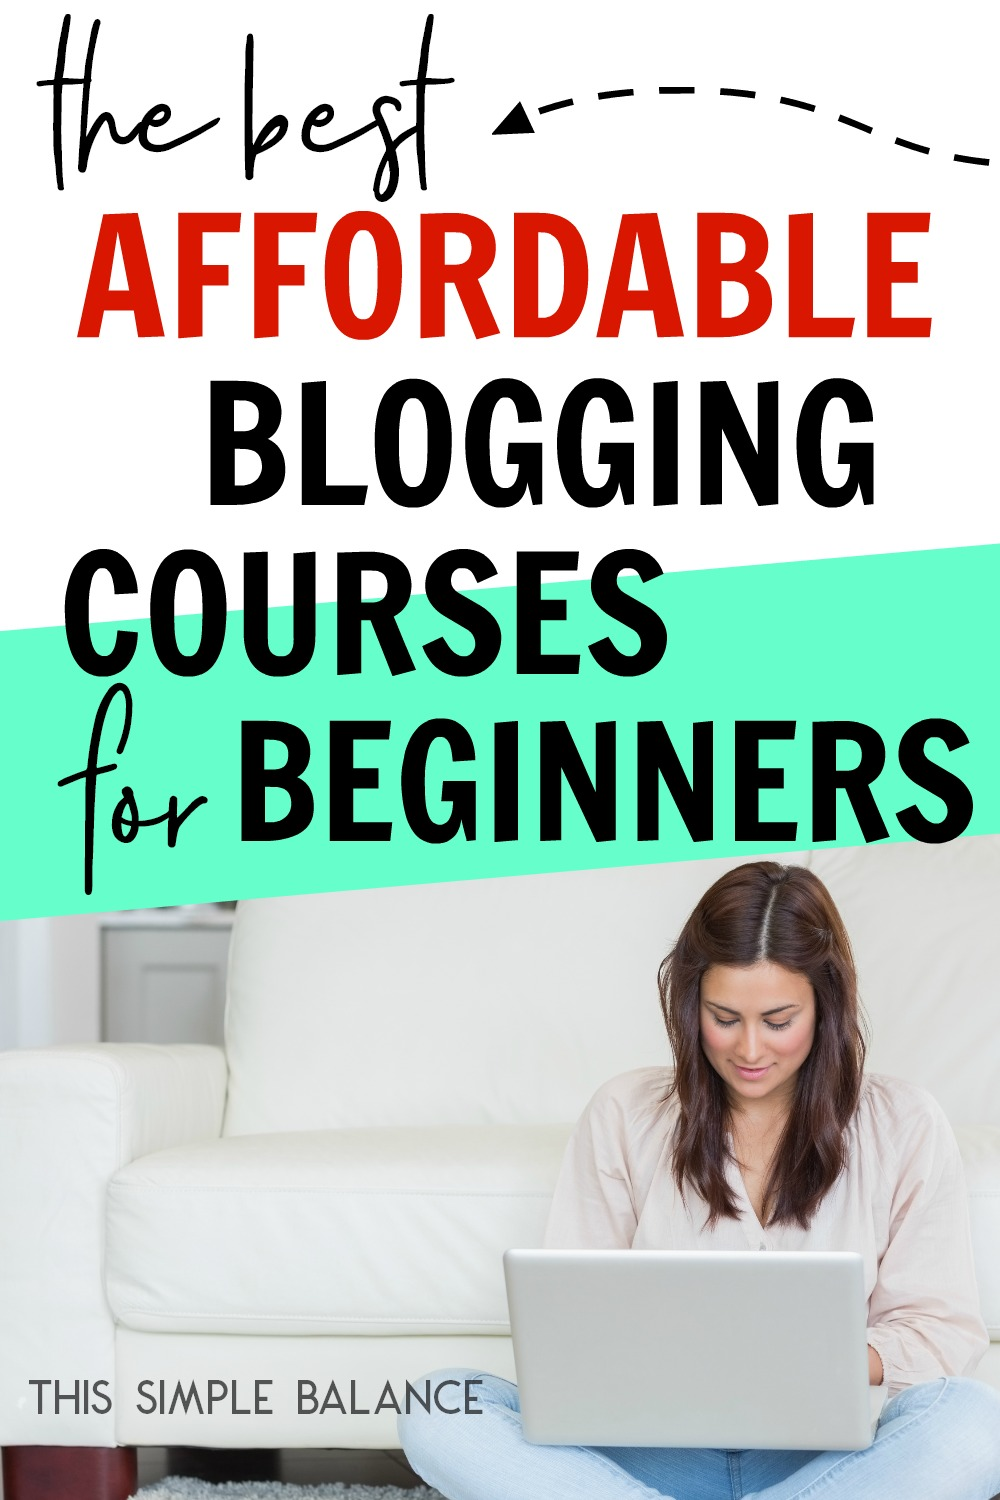 Expensive blogging courses you can't afford getting you down? These are hands down the BEST blogging courses you can buy that are actually affordable (less than $100 each - some as low as $20!).